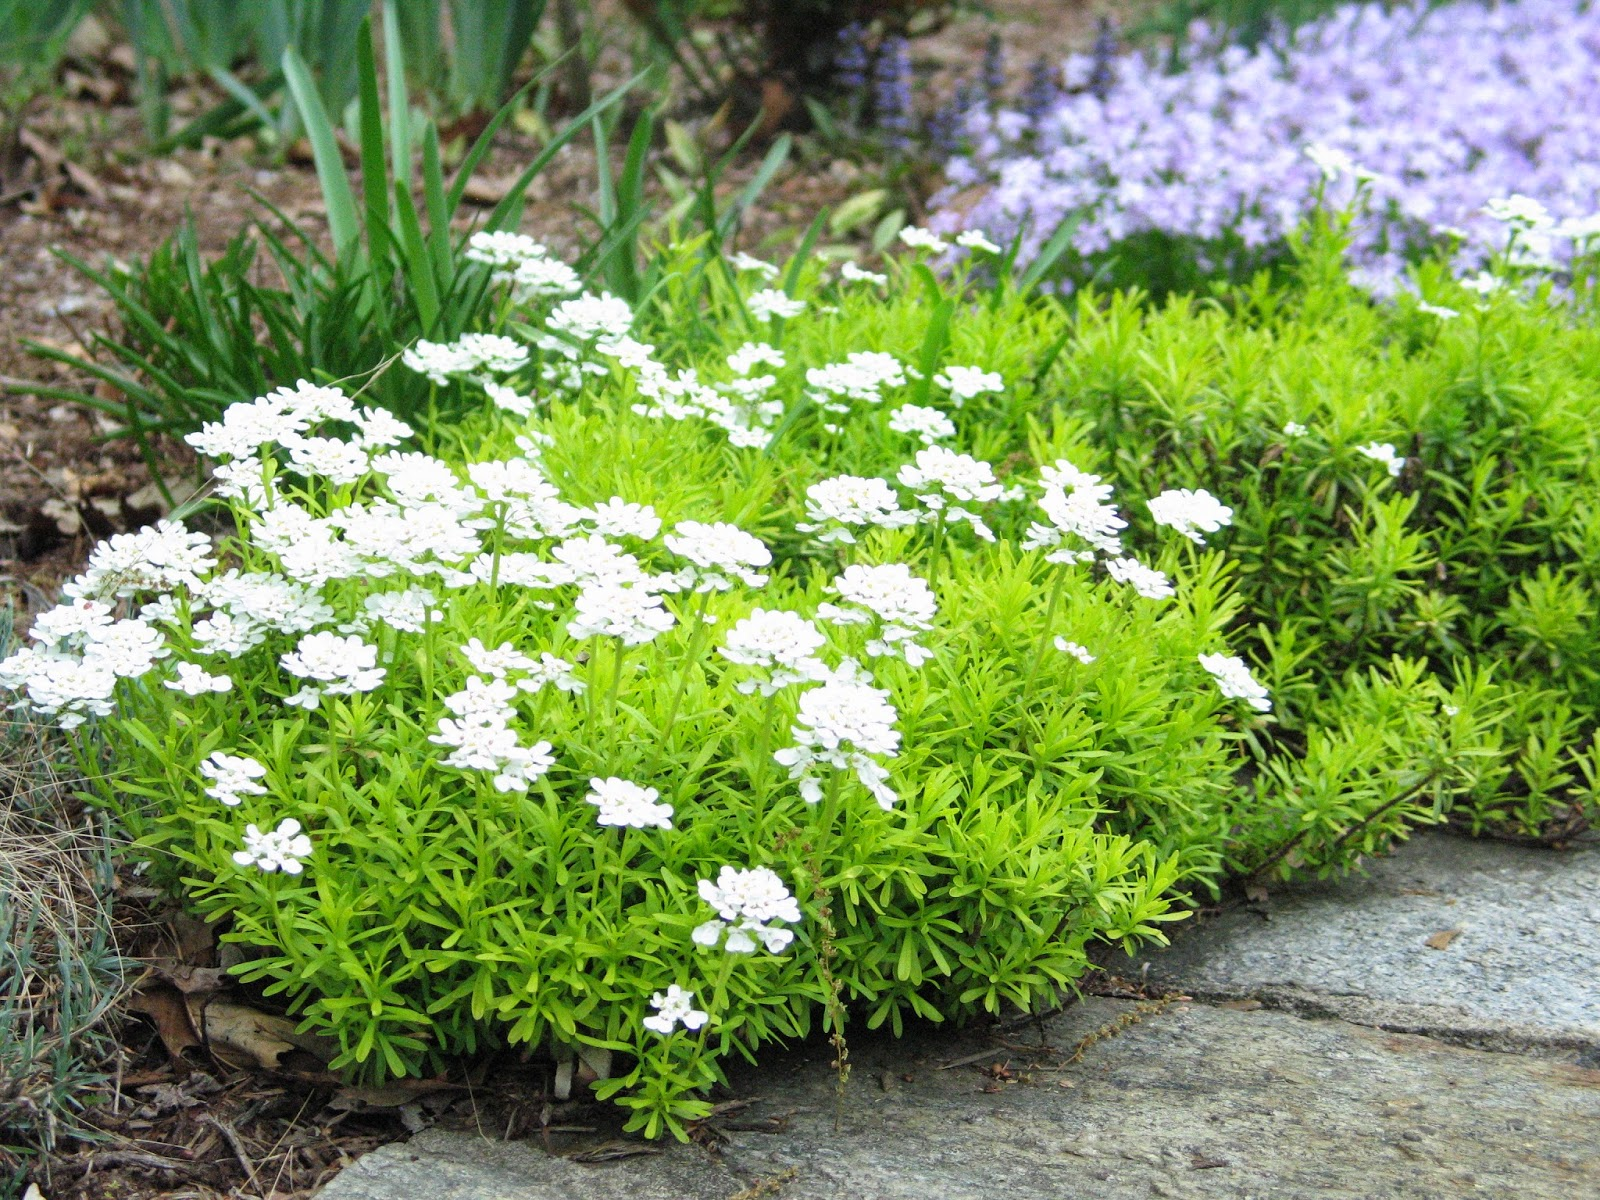 Idyll haven may 2014 for Iberis sempervirens